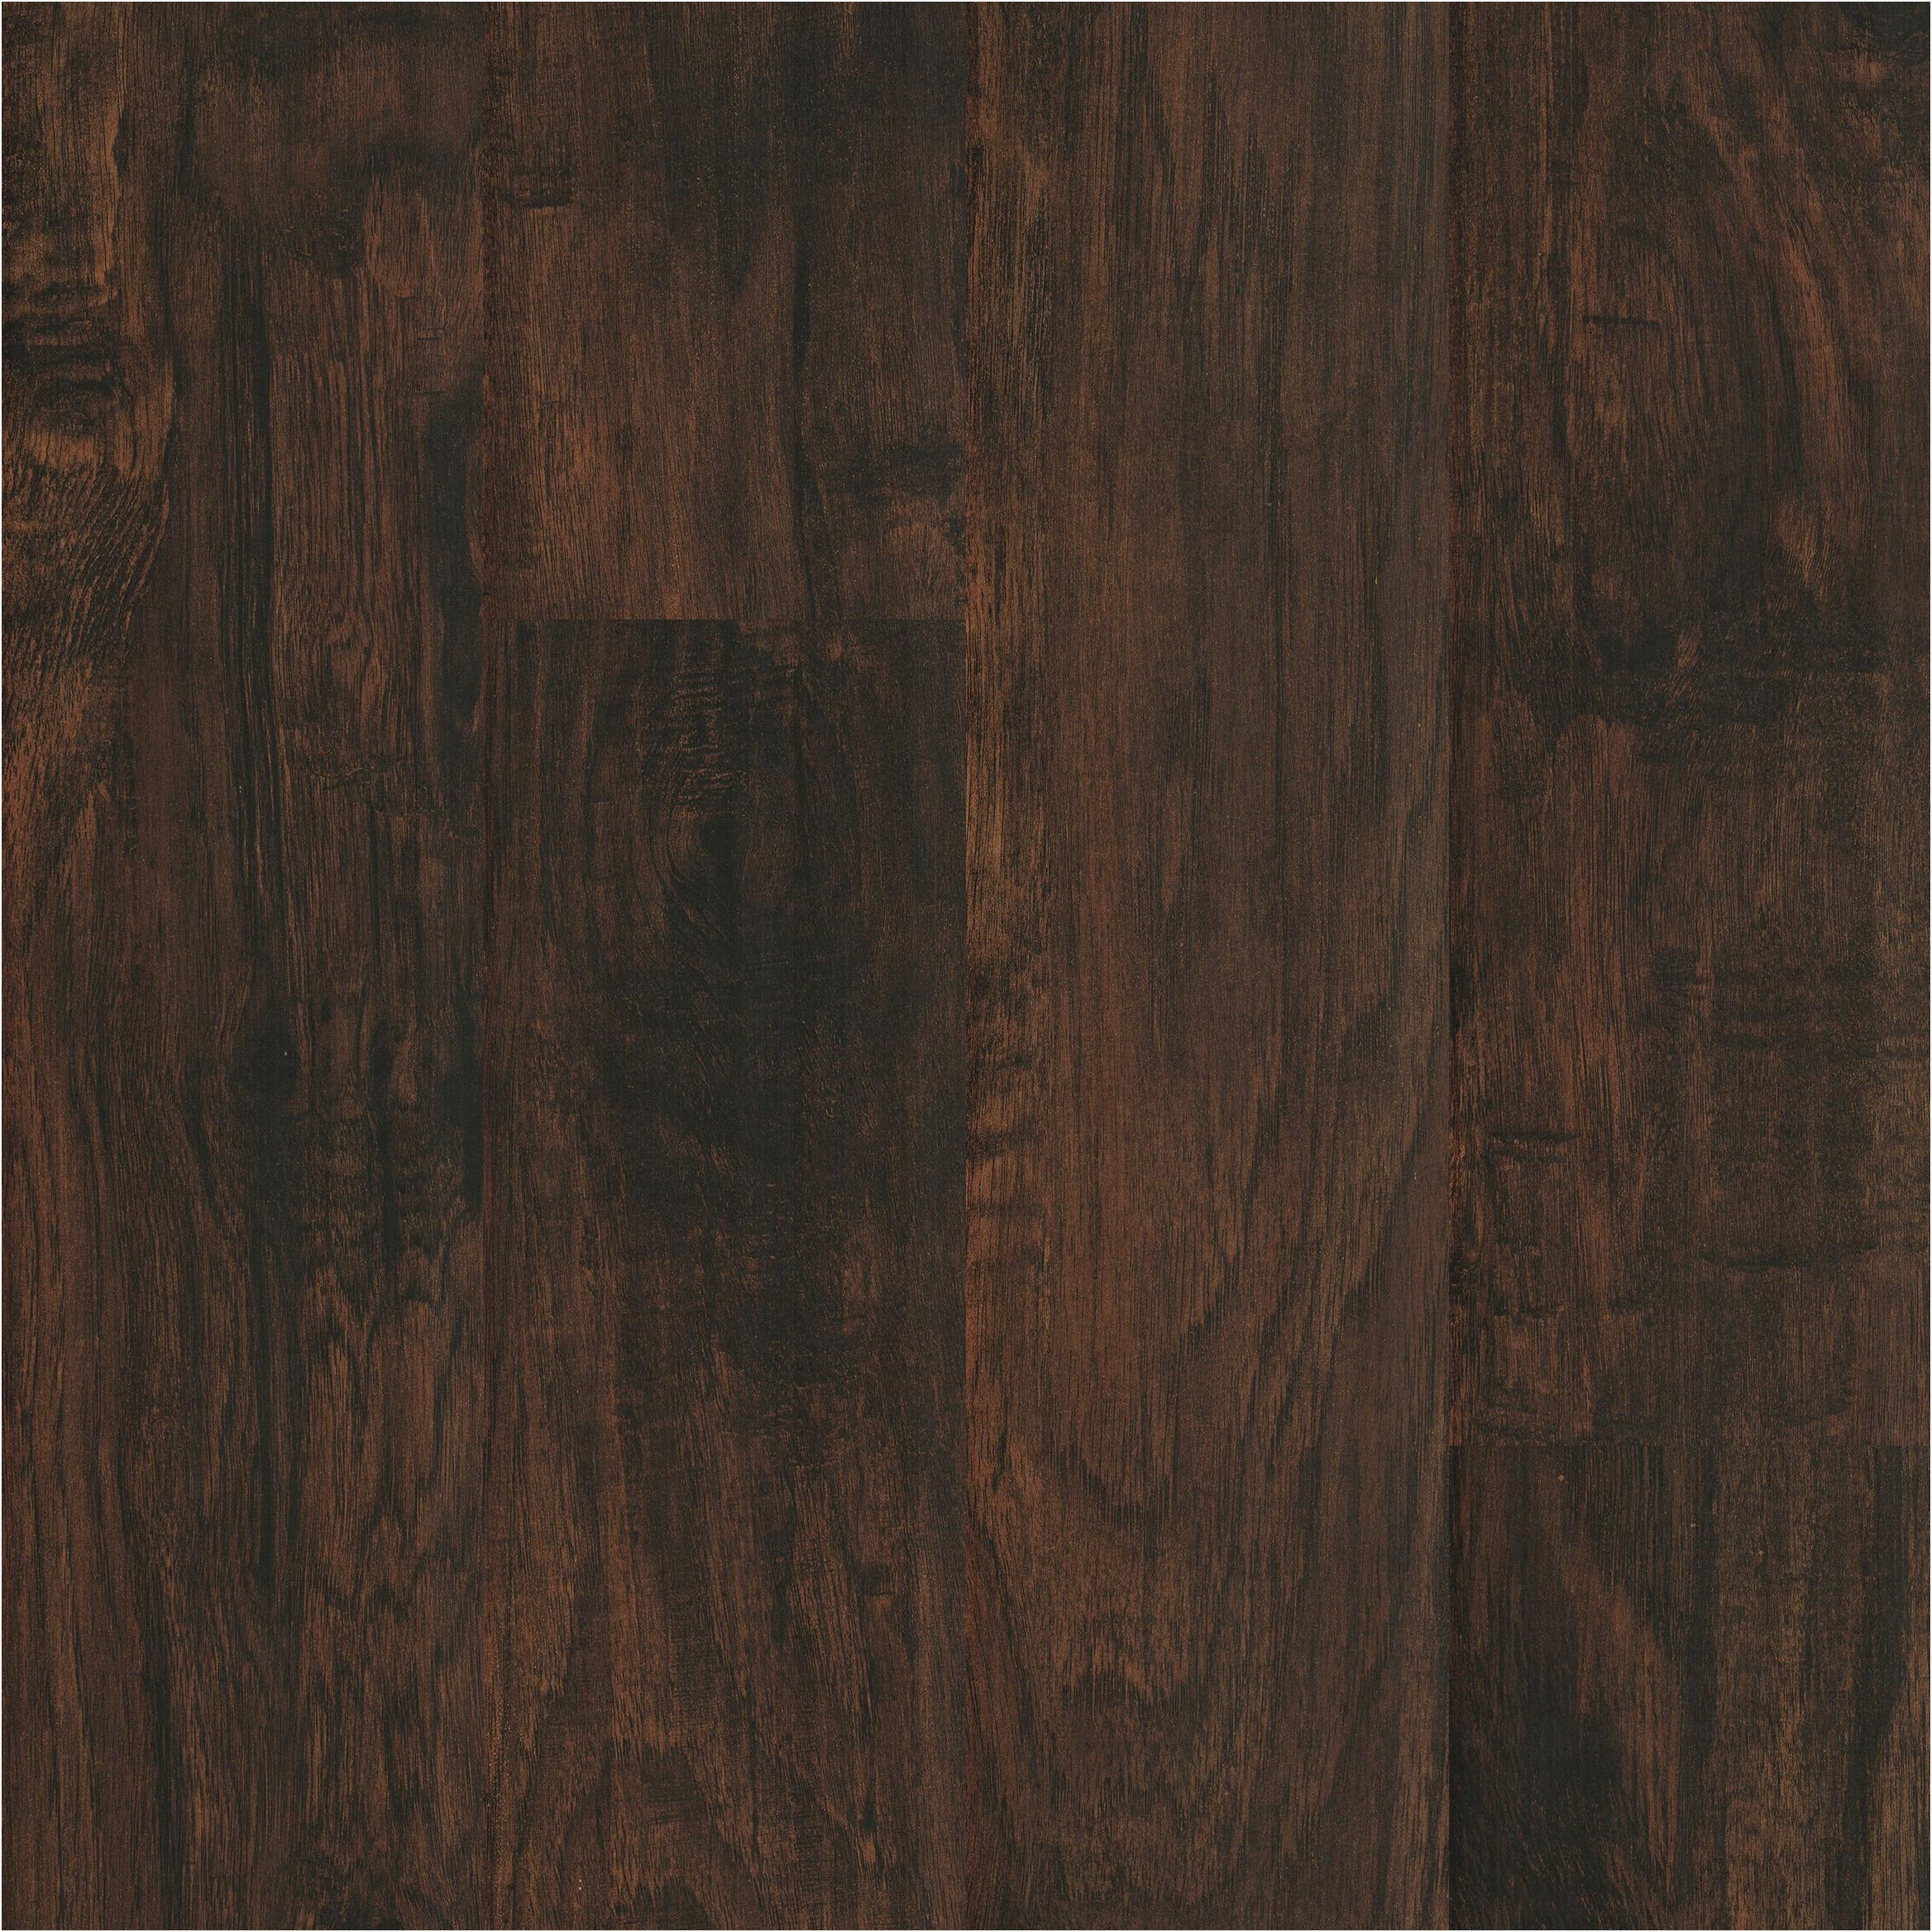 waterproof hardwood flooring of how much to install vinyl flooring flooring design in how much to install vinyl flooring elegant ivc deep java hickory 6 wide waterproof to